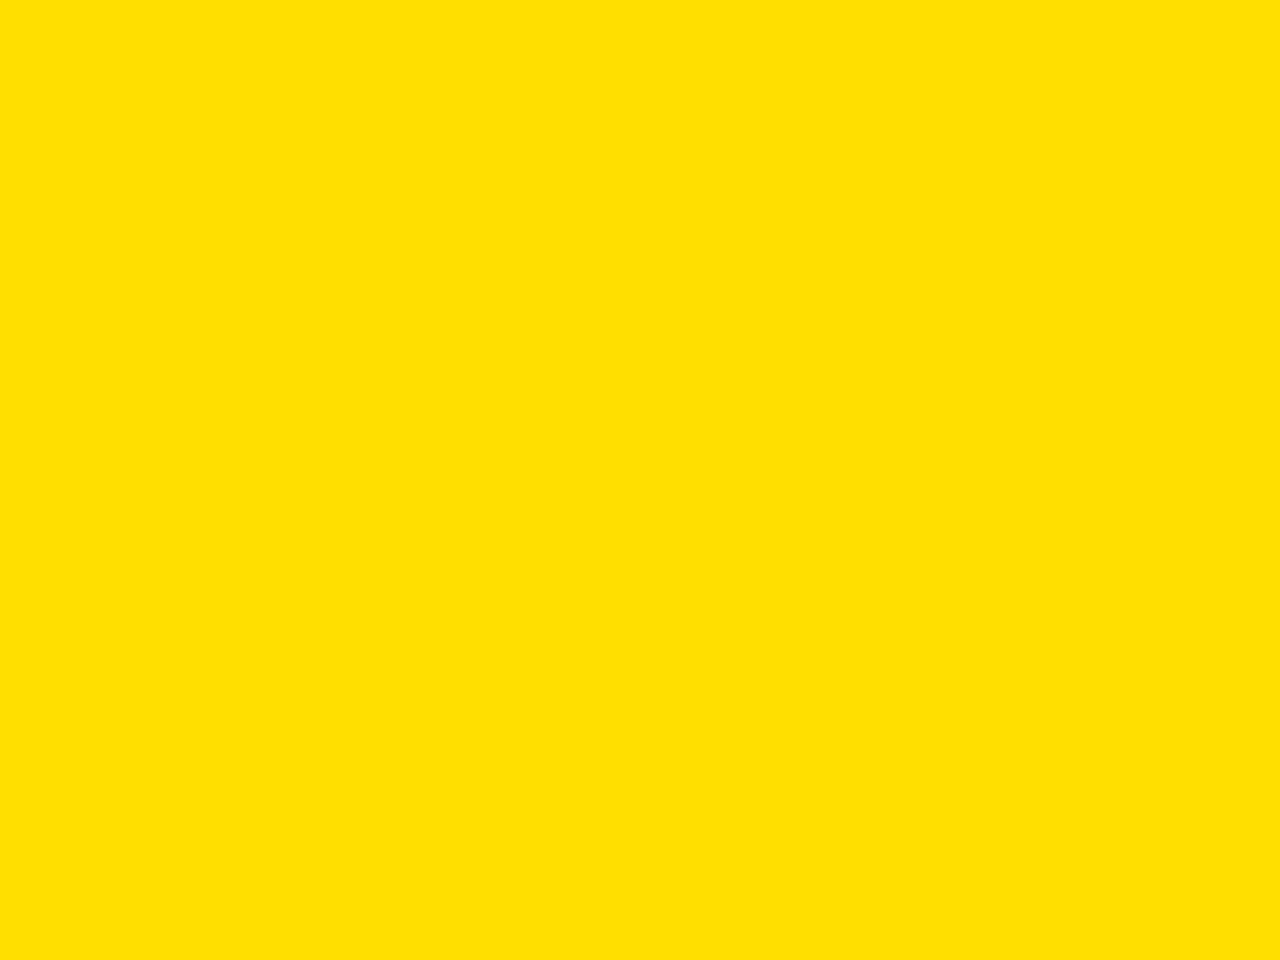 1280x960 Yellow Pantone Solid Color Background